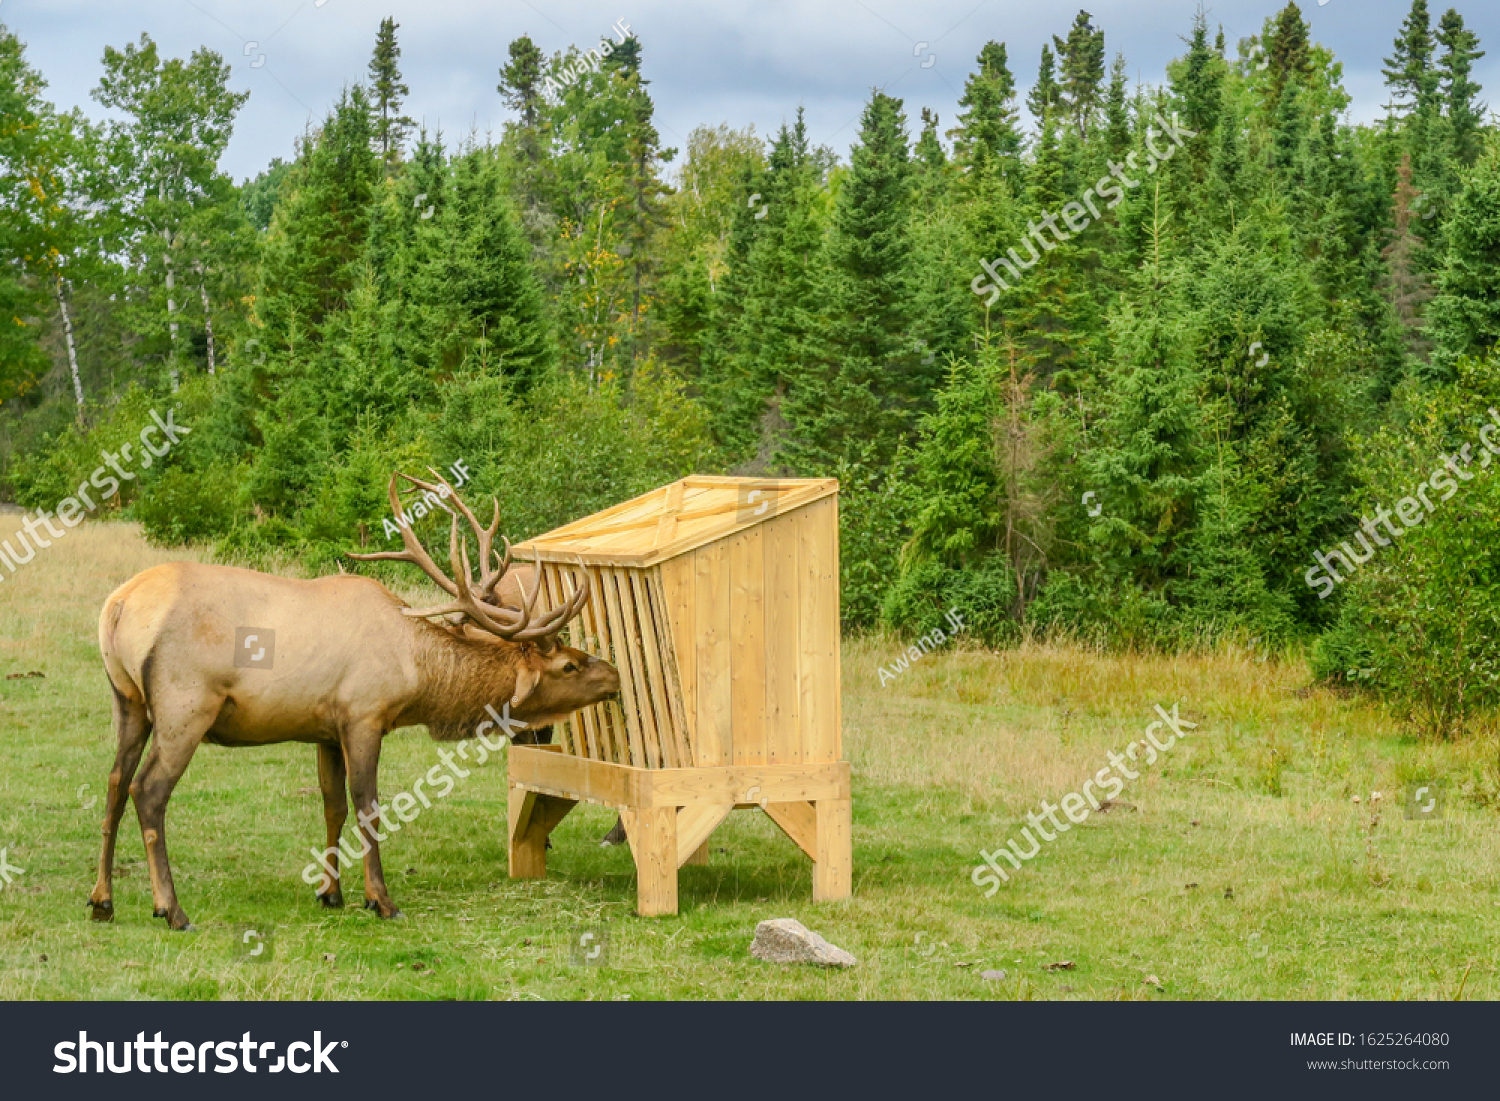 View of an elk eating from a hay feeder